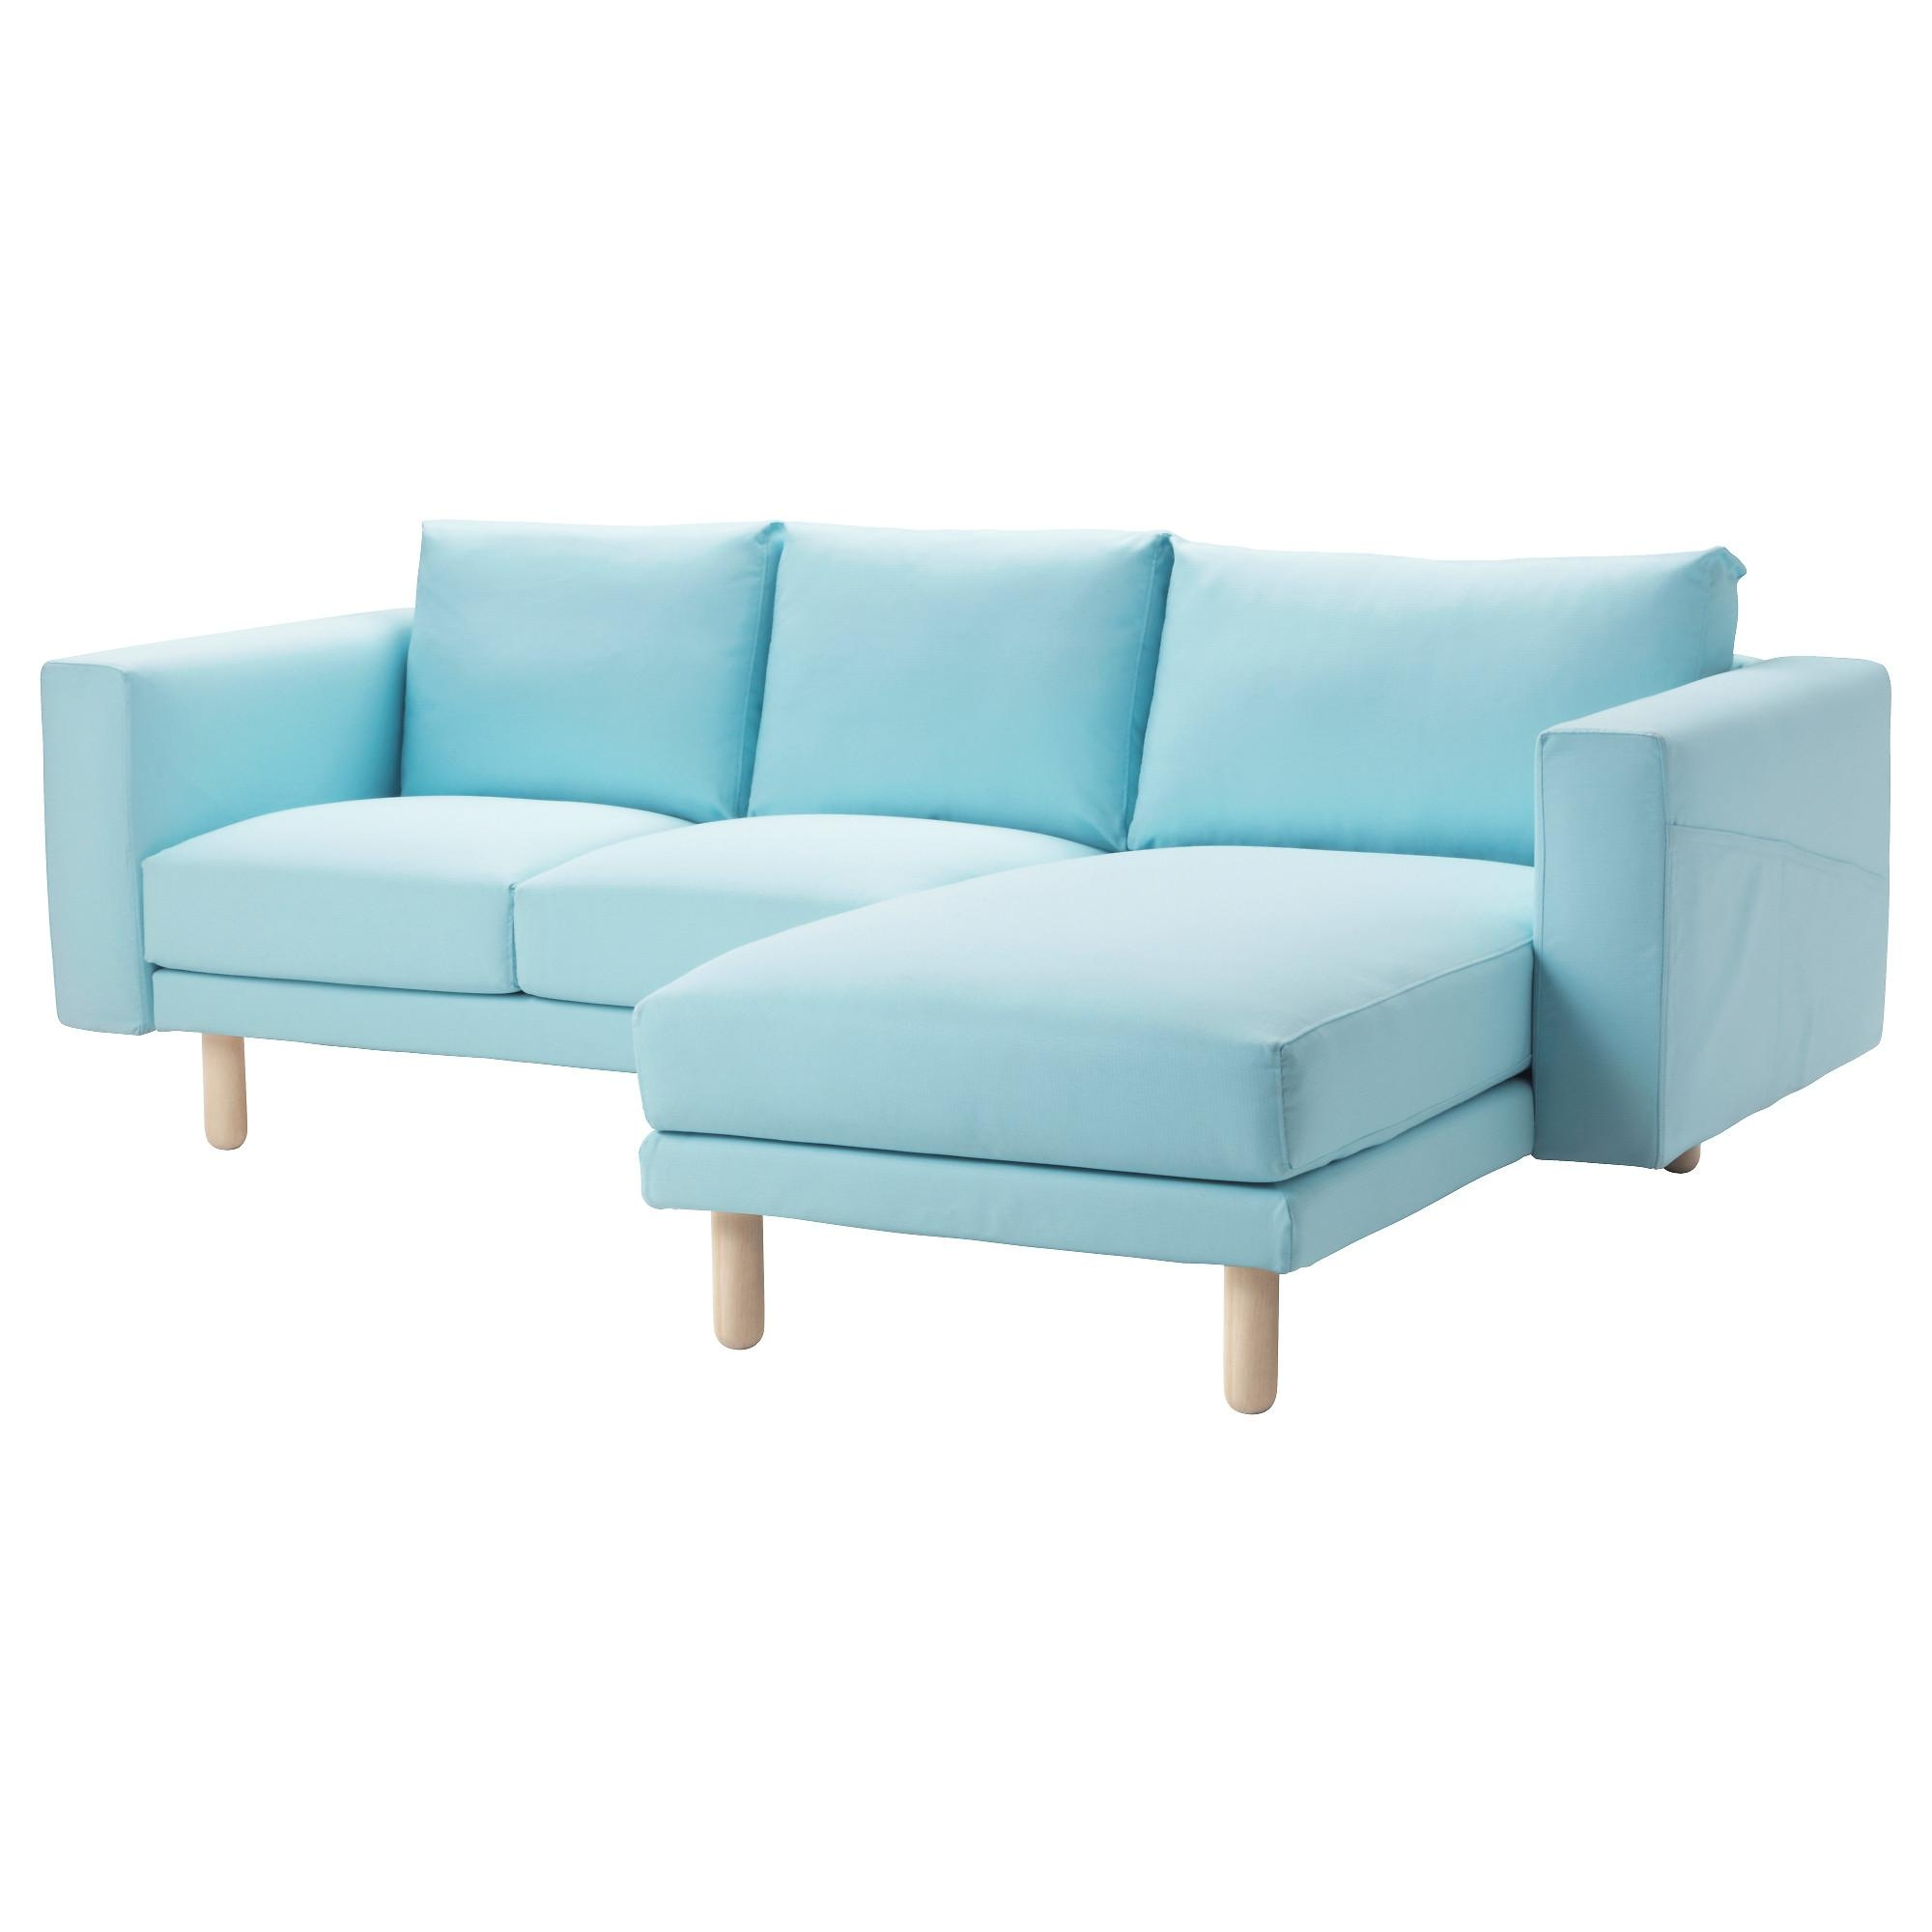 Furniture: Classy Ikea Couch Covers Design For Stylish Living Room Inside Teal Sofa Slipcovers (Image 4 of 20)